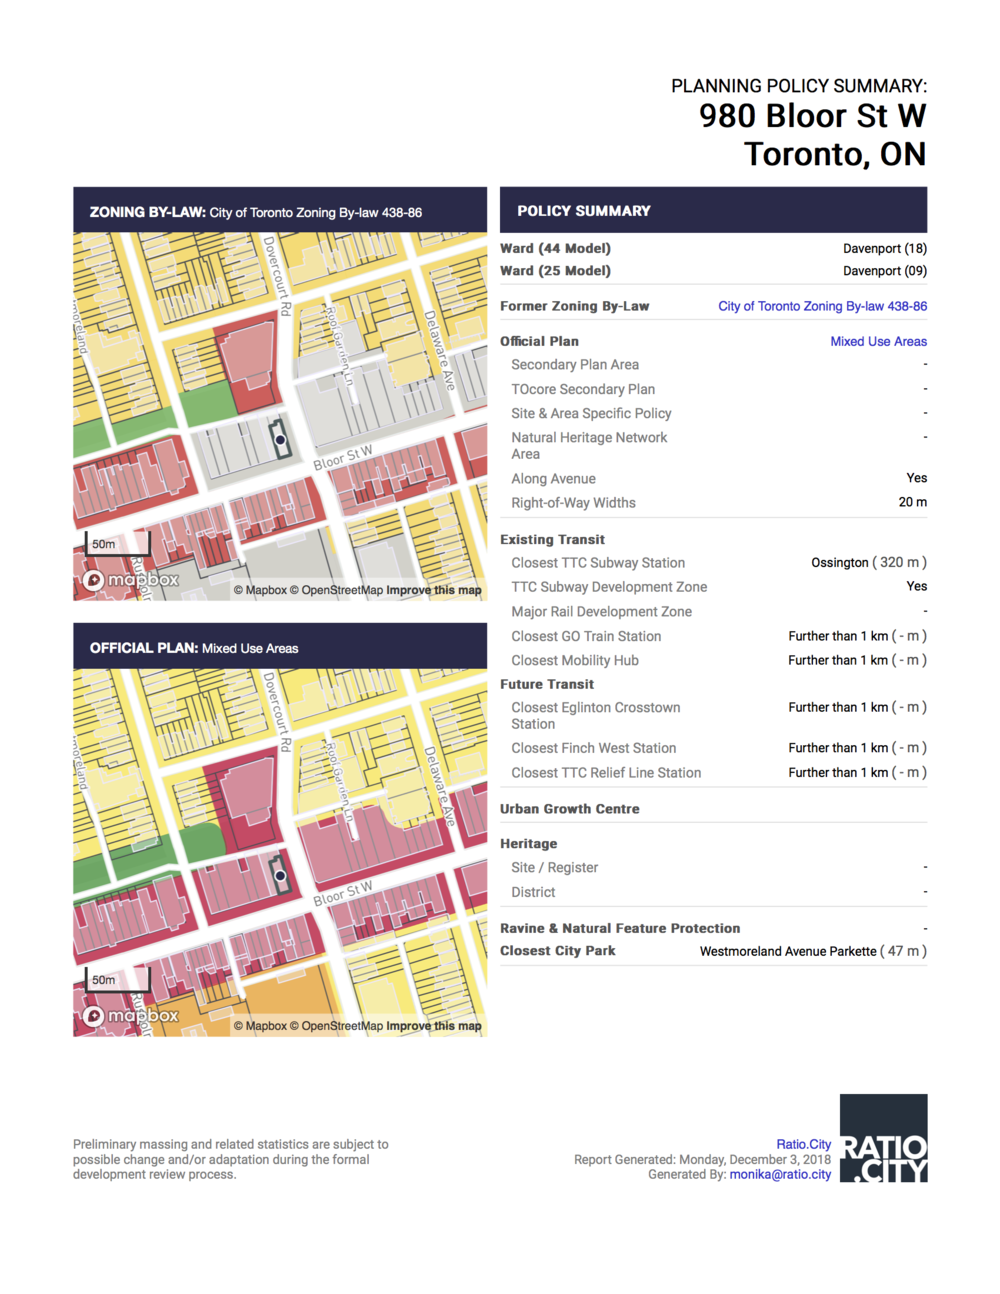 Planning Policy Summary: - Single page report providing an instant summary of all policy layers intersecting a site, including two maps of Zoning By-Law Categories and Official Plan Land Use Layers.